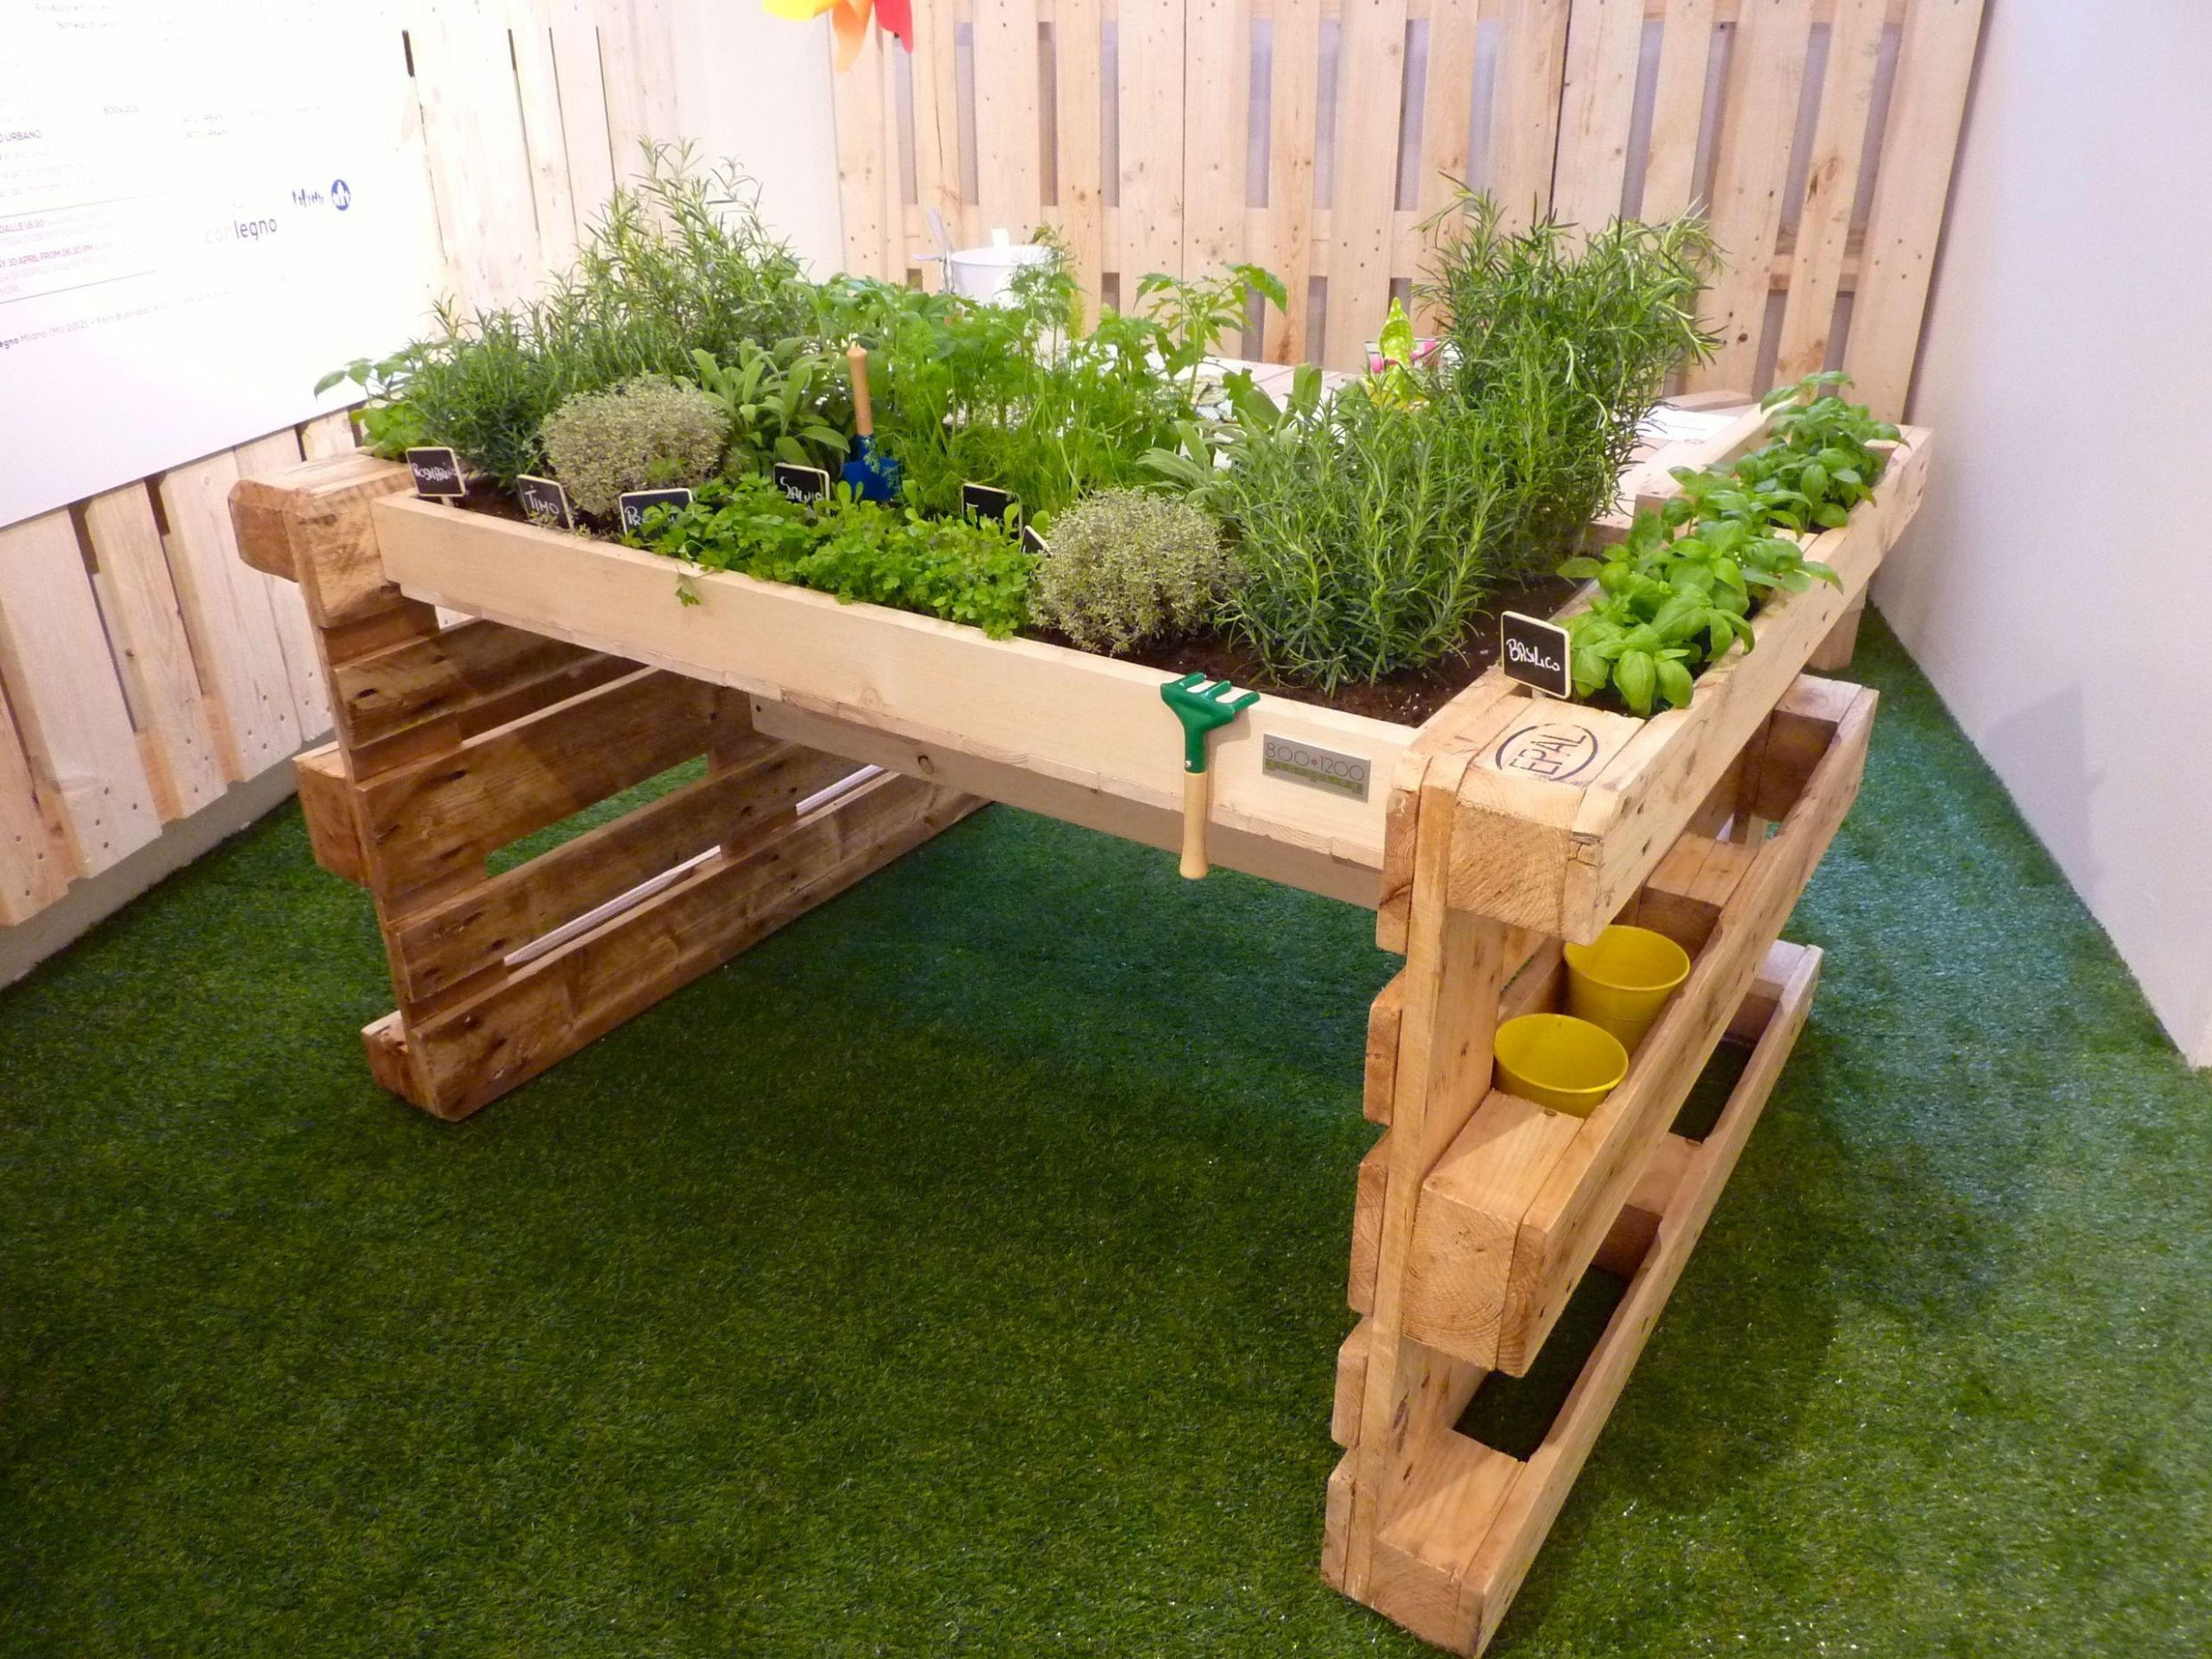 8 Deluxe Custom Diy Pallet Decor Garden Ideas That Will Steal The ..